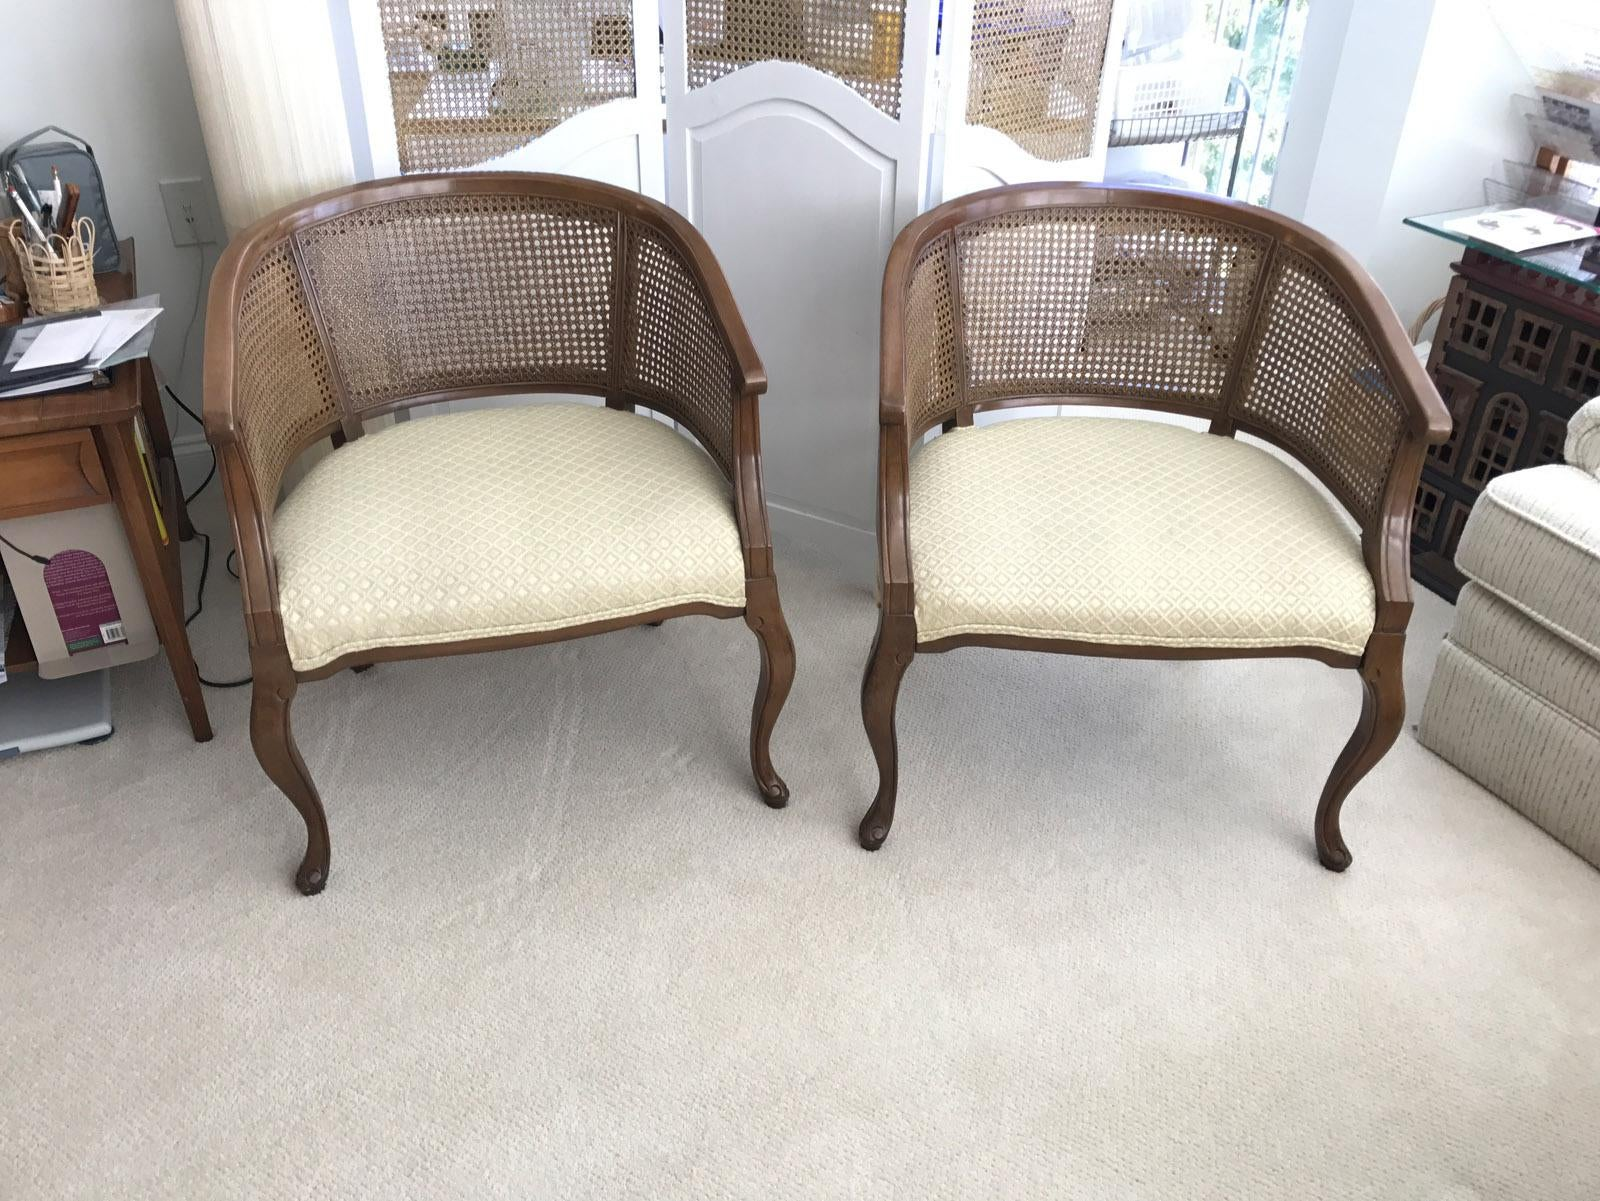 Ordinaire Offered As A Pair, These Two Vintage American Quality Fine Barrel Style  Chairs Feature Real